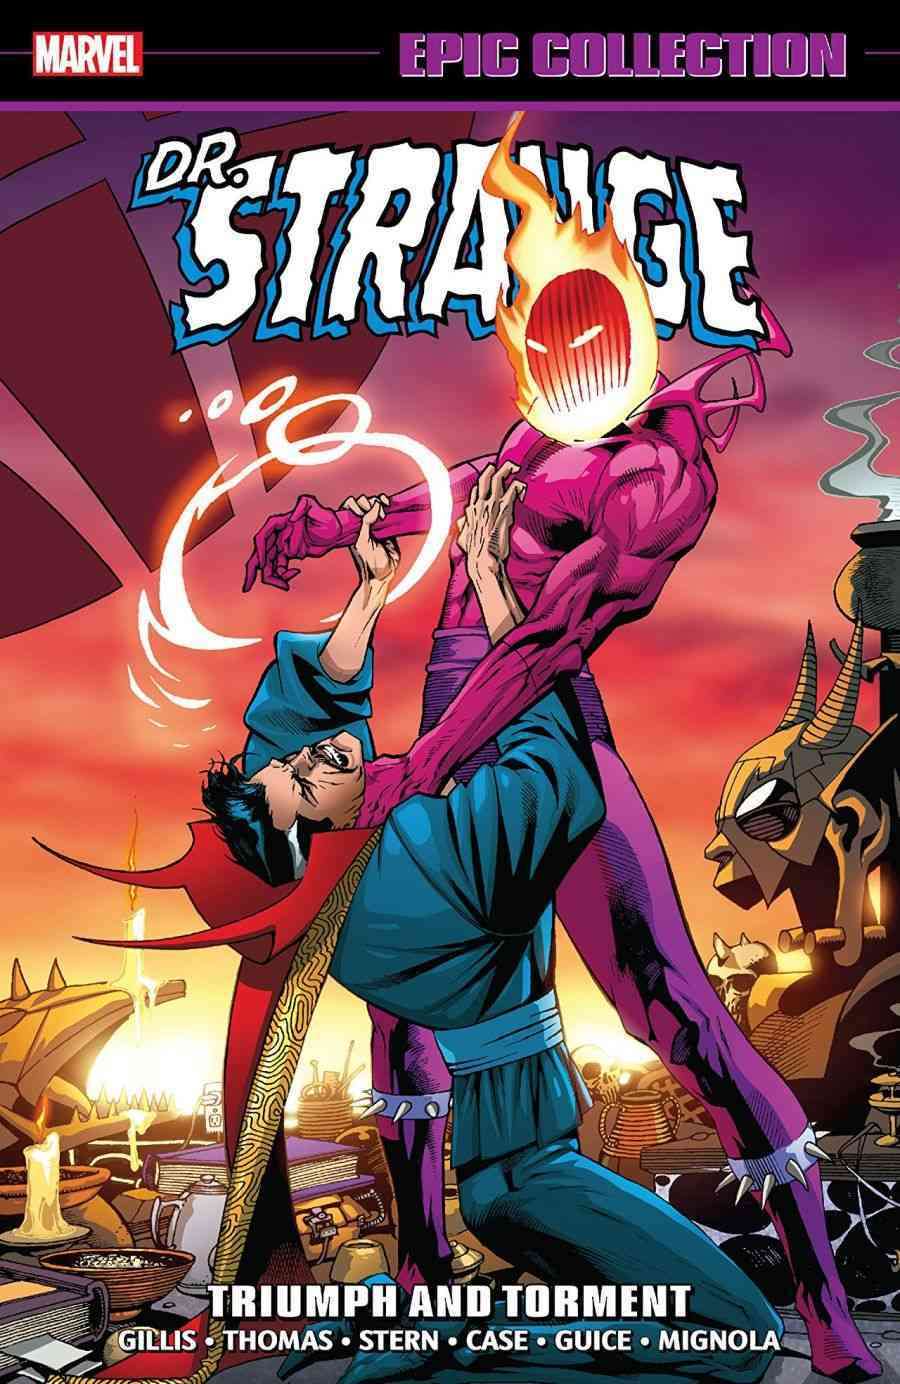 Doctor Strange Epic Collection Triumph and Torment